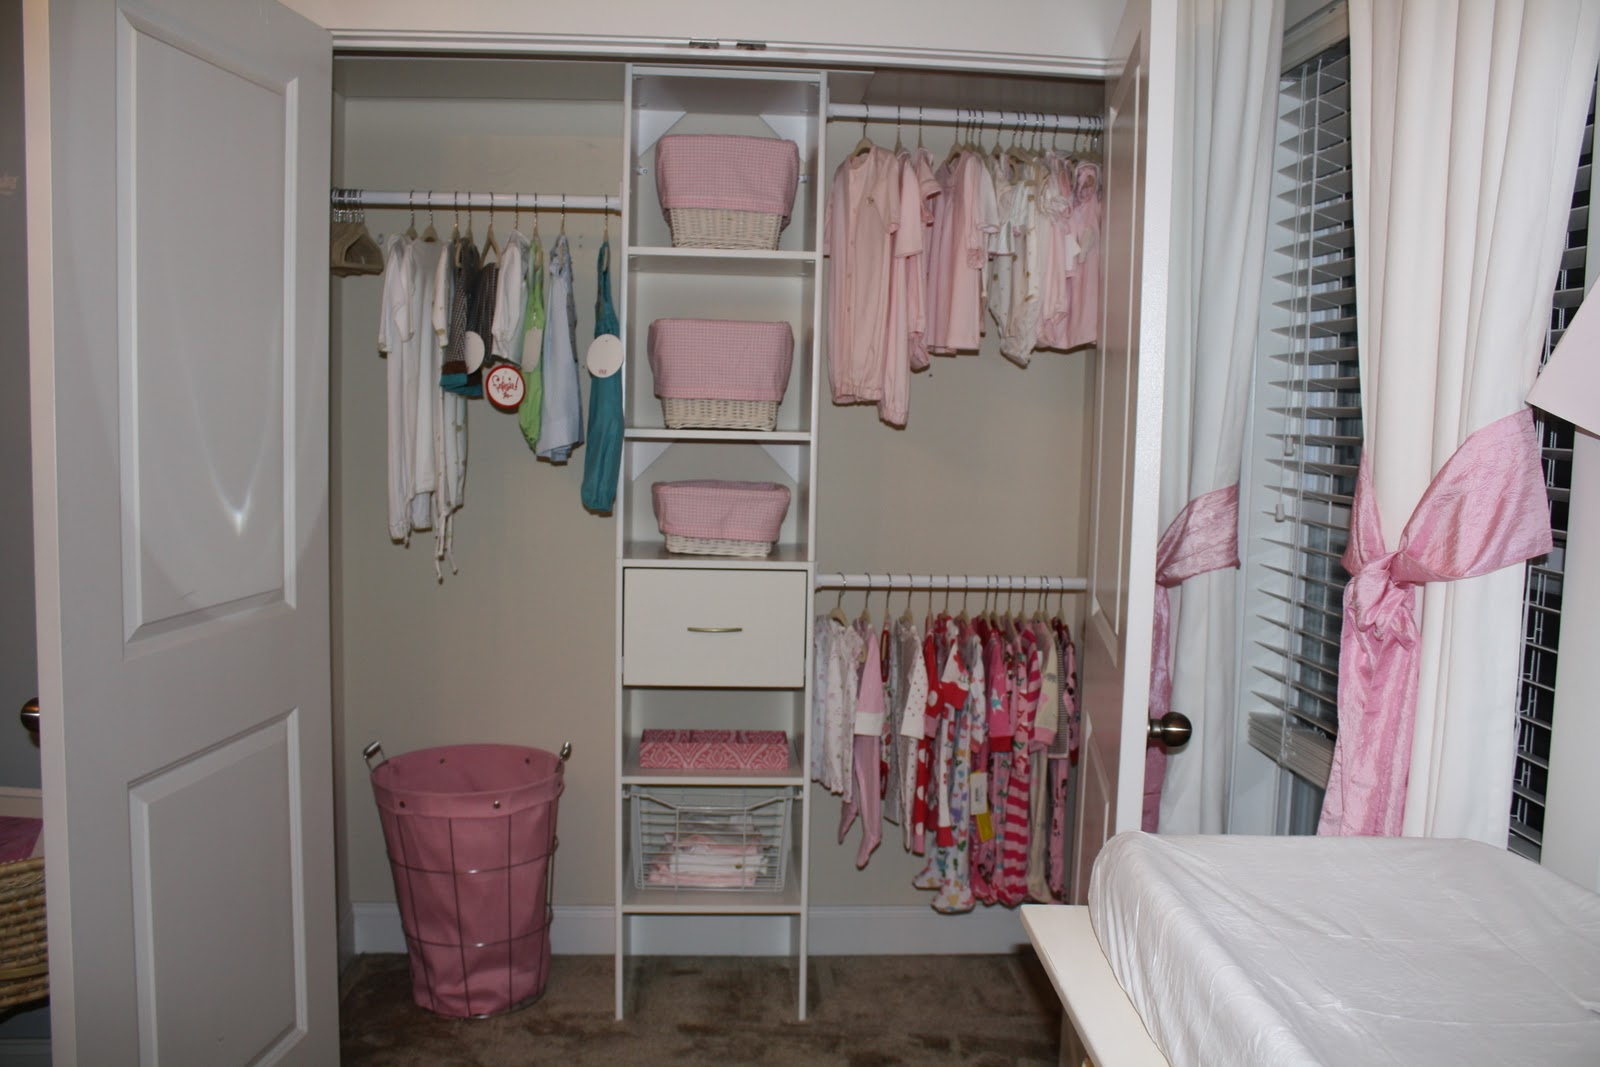 ... Little Ladies Closet Turned Out! The Pictures Really Donu0027t Do It  Justice, My Husband Rocks! Now If I Can Convince Him To Do Ours And The  Laundry Room :)